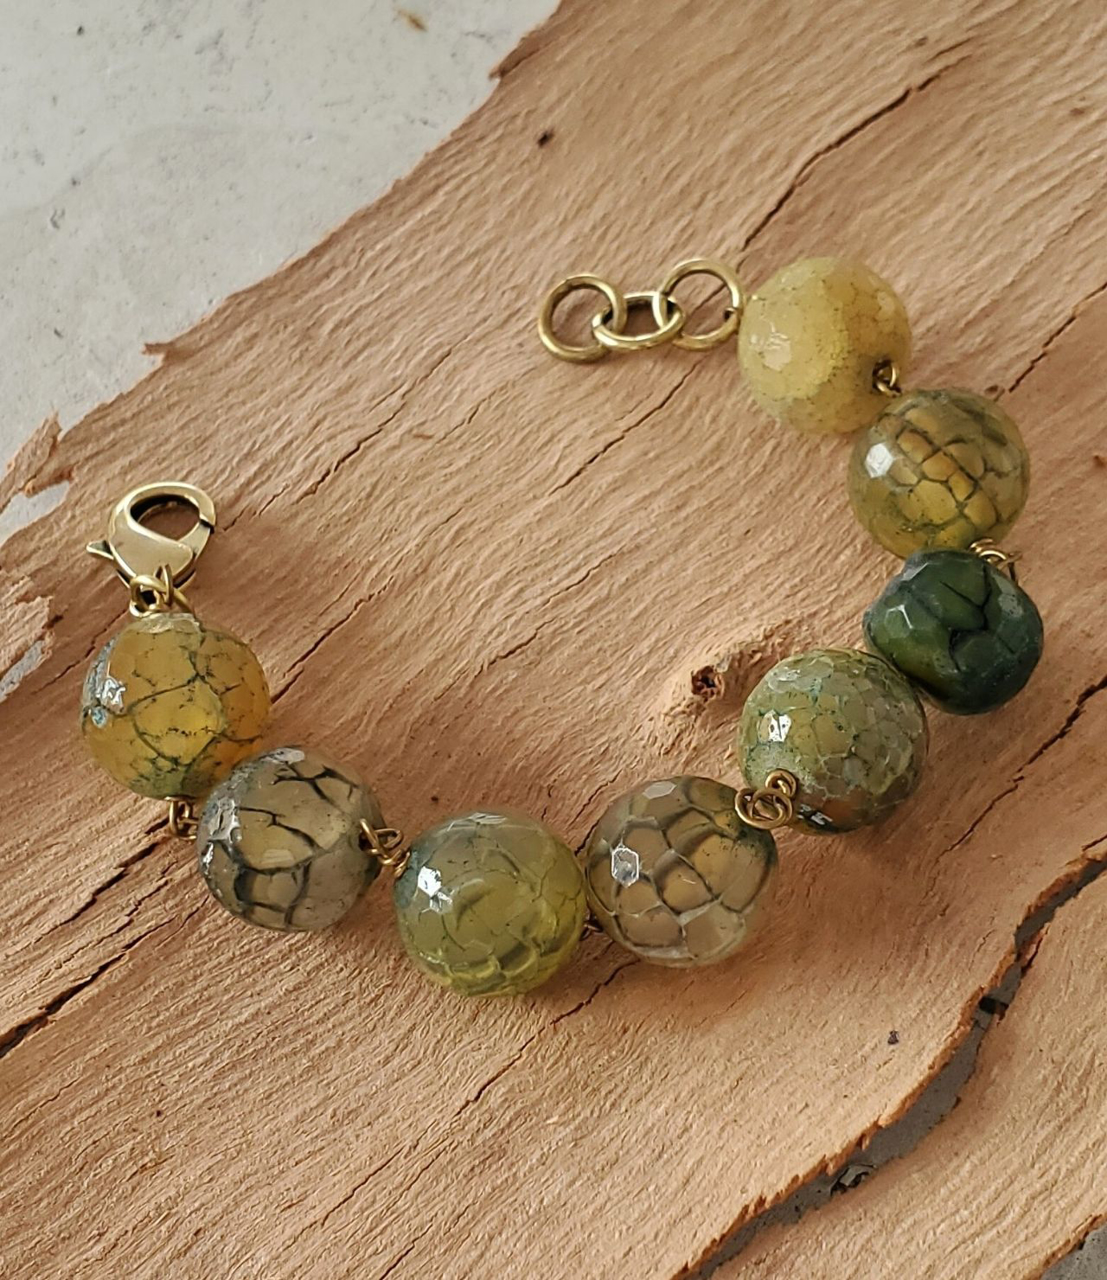 Green and teal round gemstone bracelet on wood